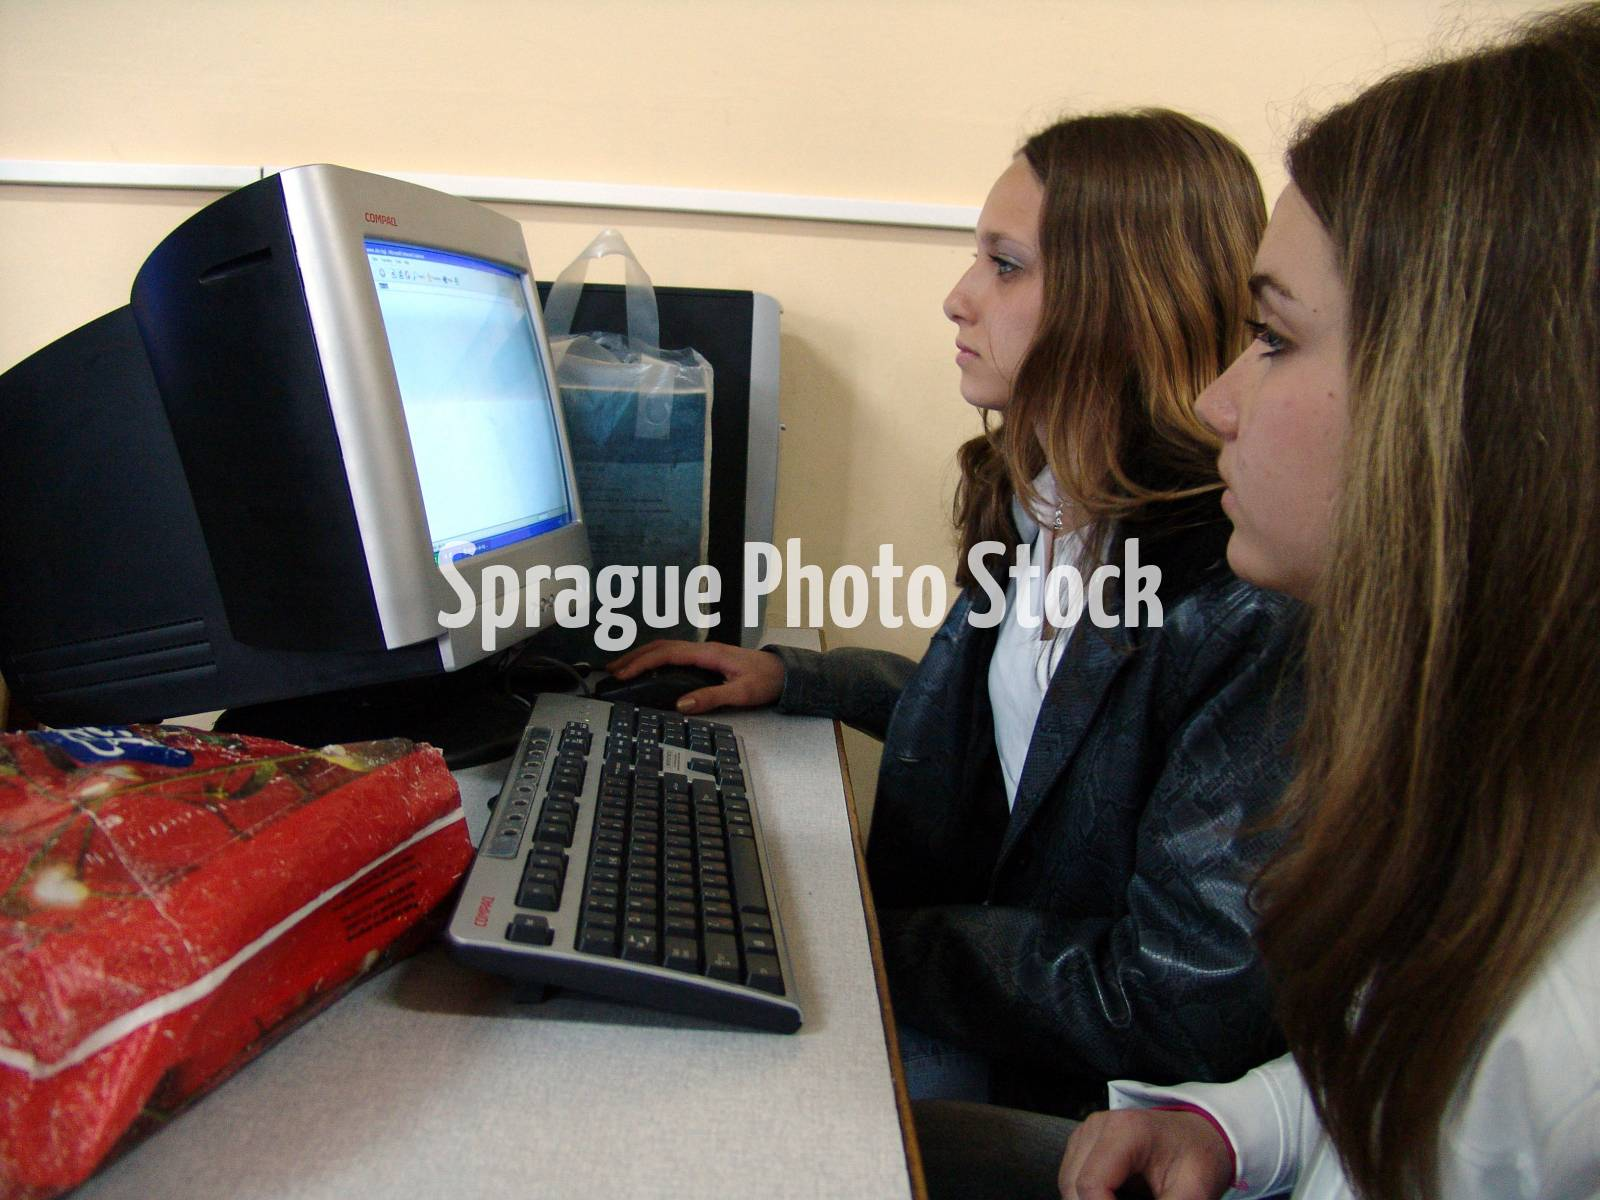 High school children using computers, Karlova, Bulgaria.